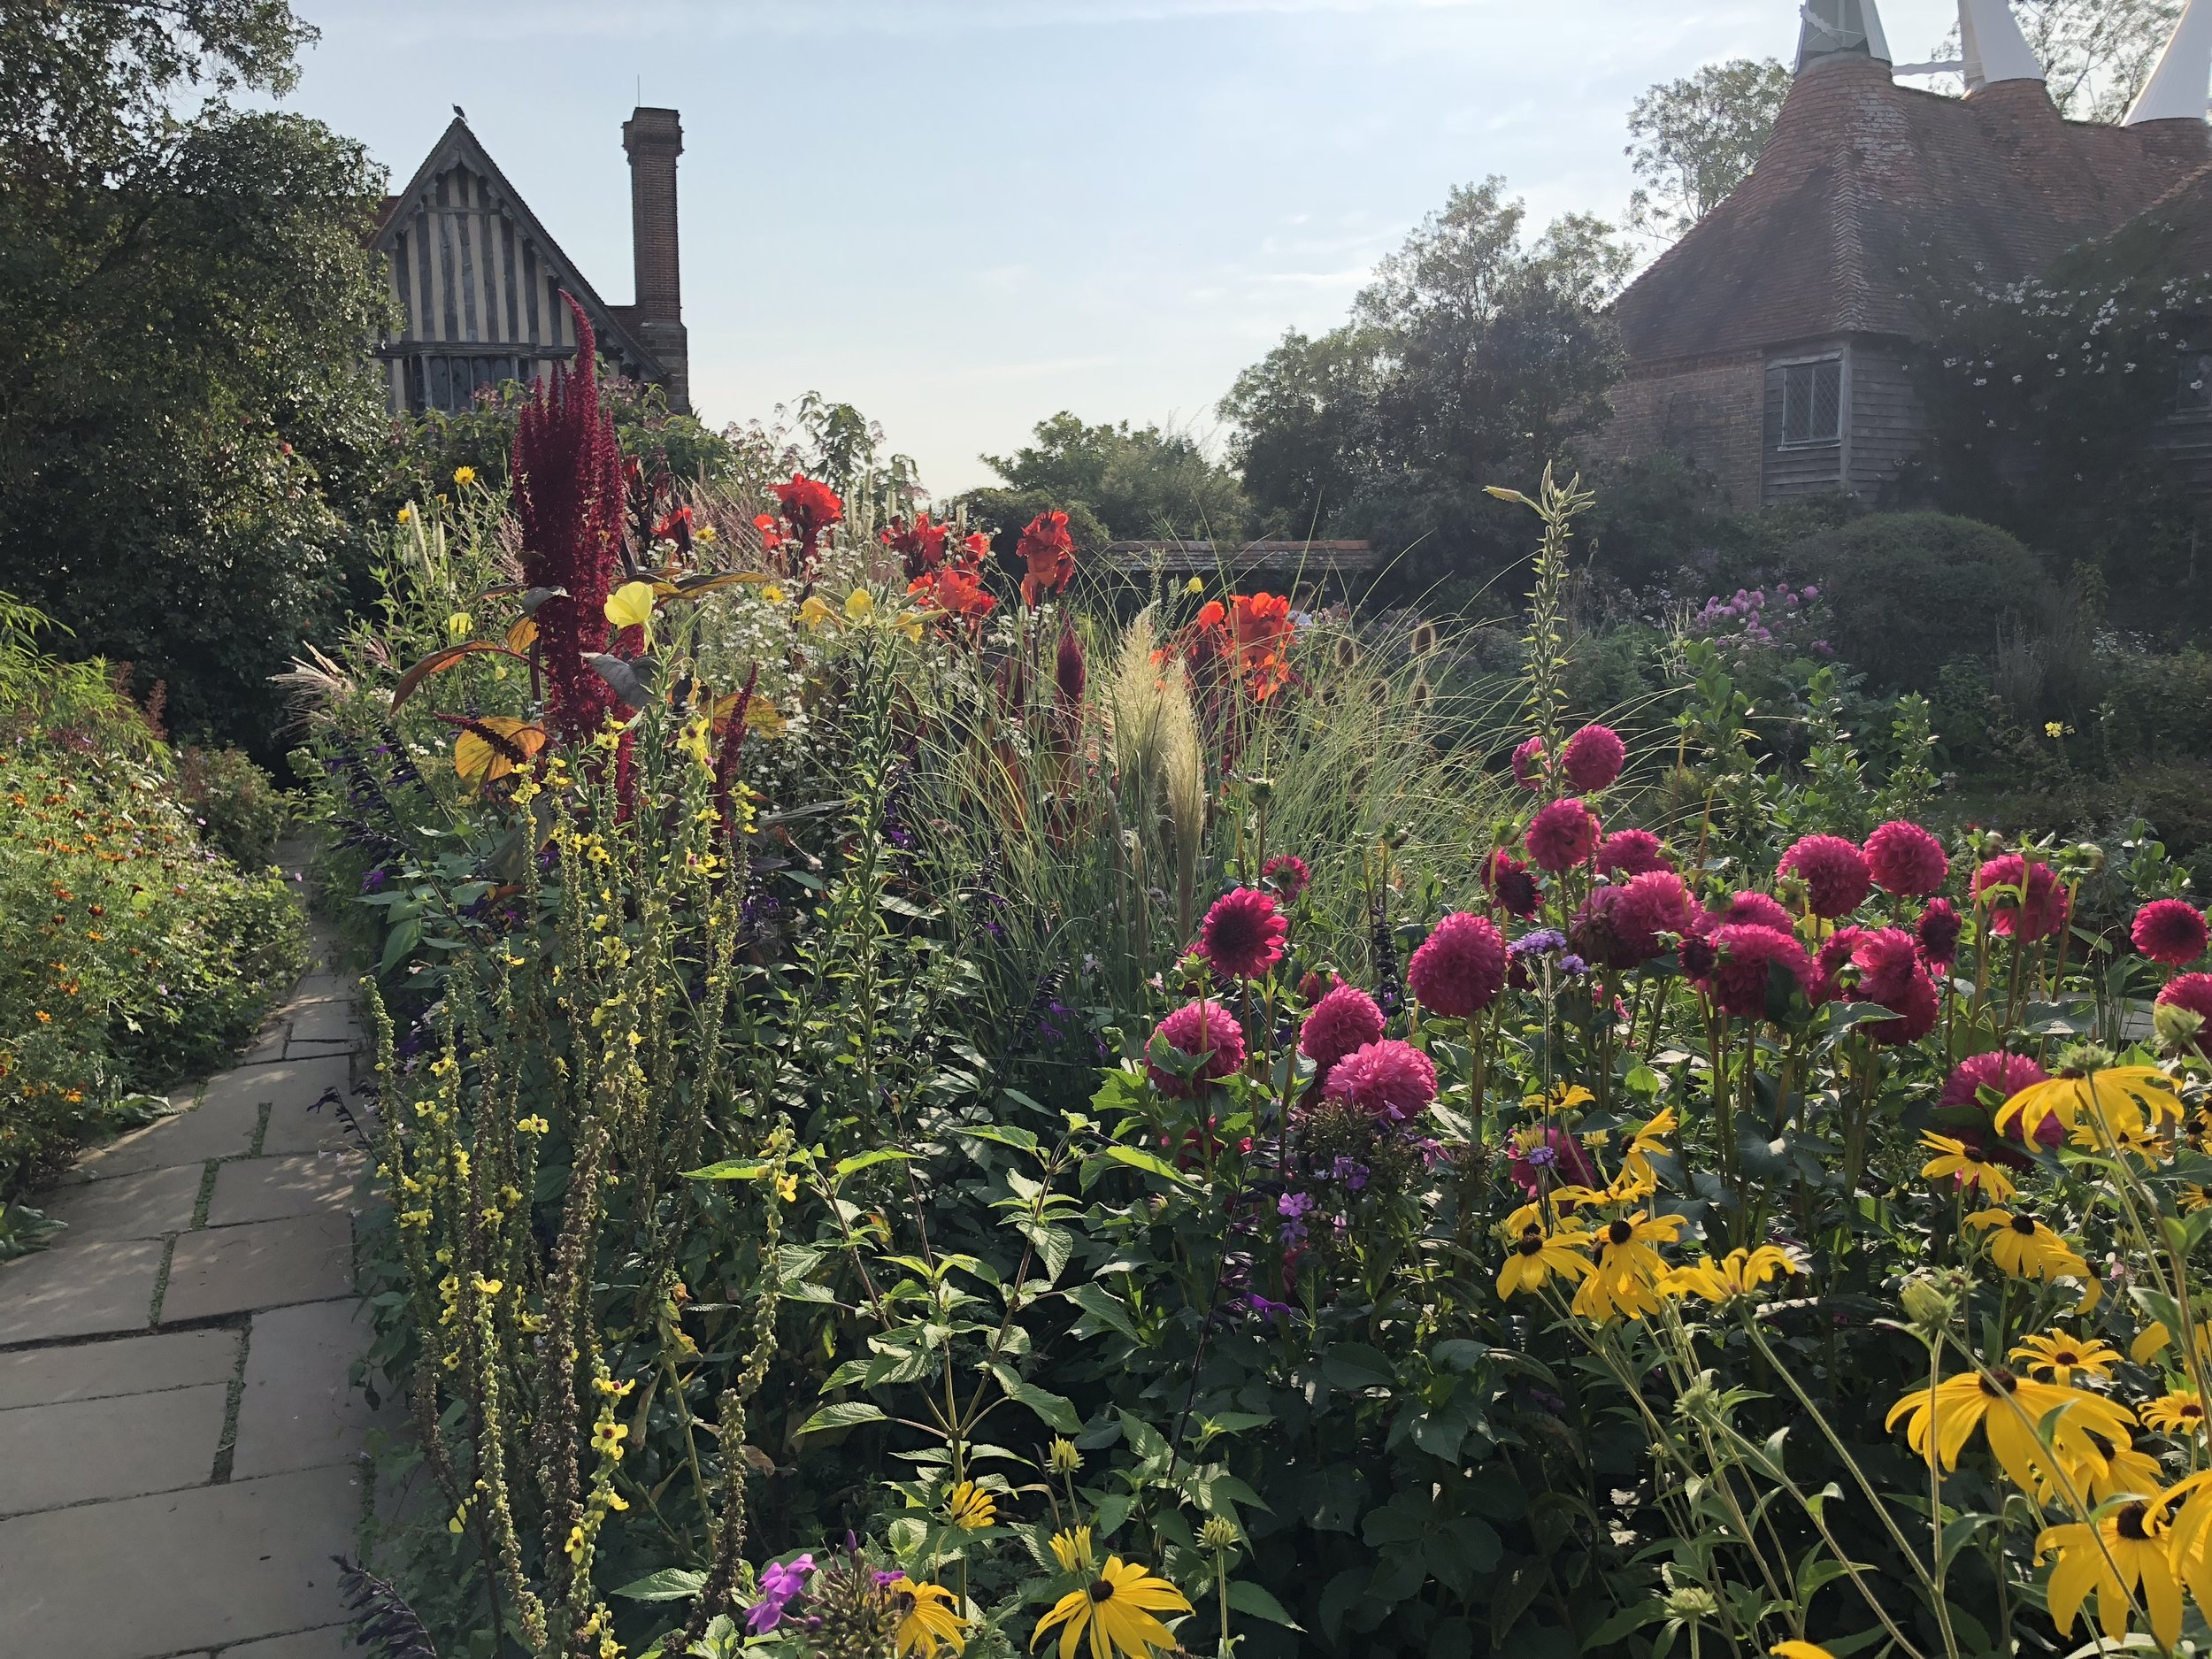 GARDENS - We've selected from the best public, private and teaching gardens the UK and Europe have to offer.